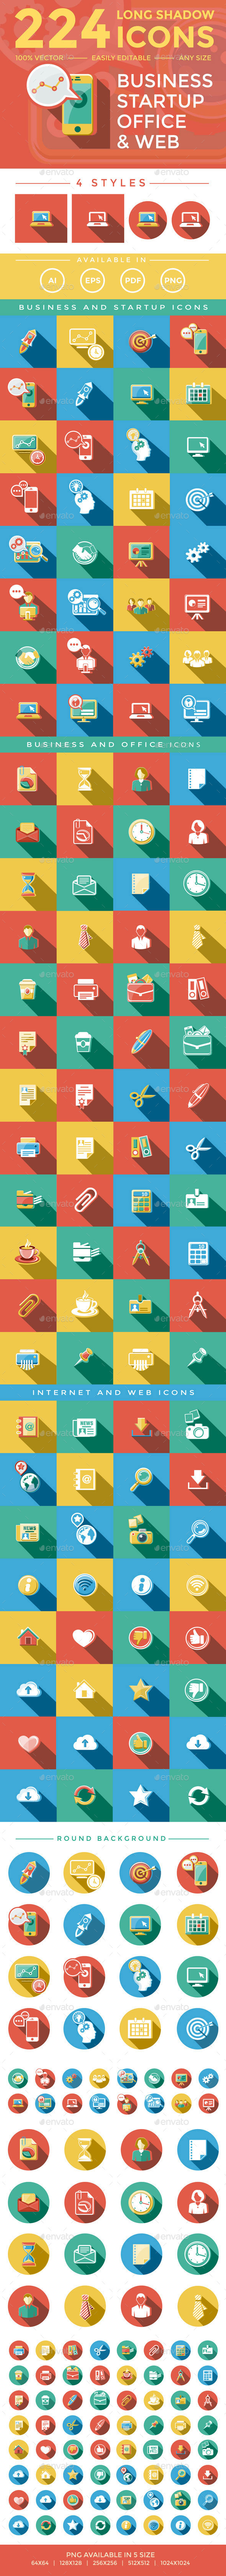 Business & Startup Icons - Business Icons